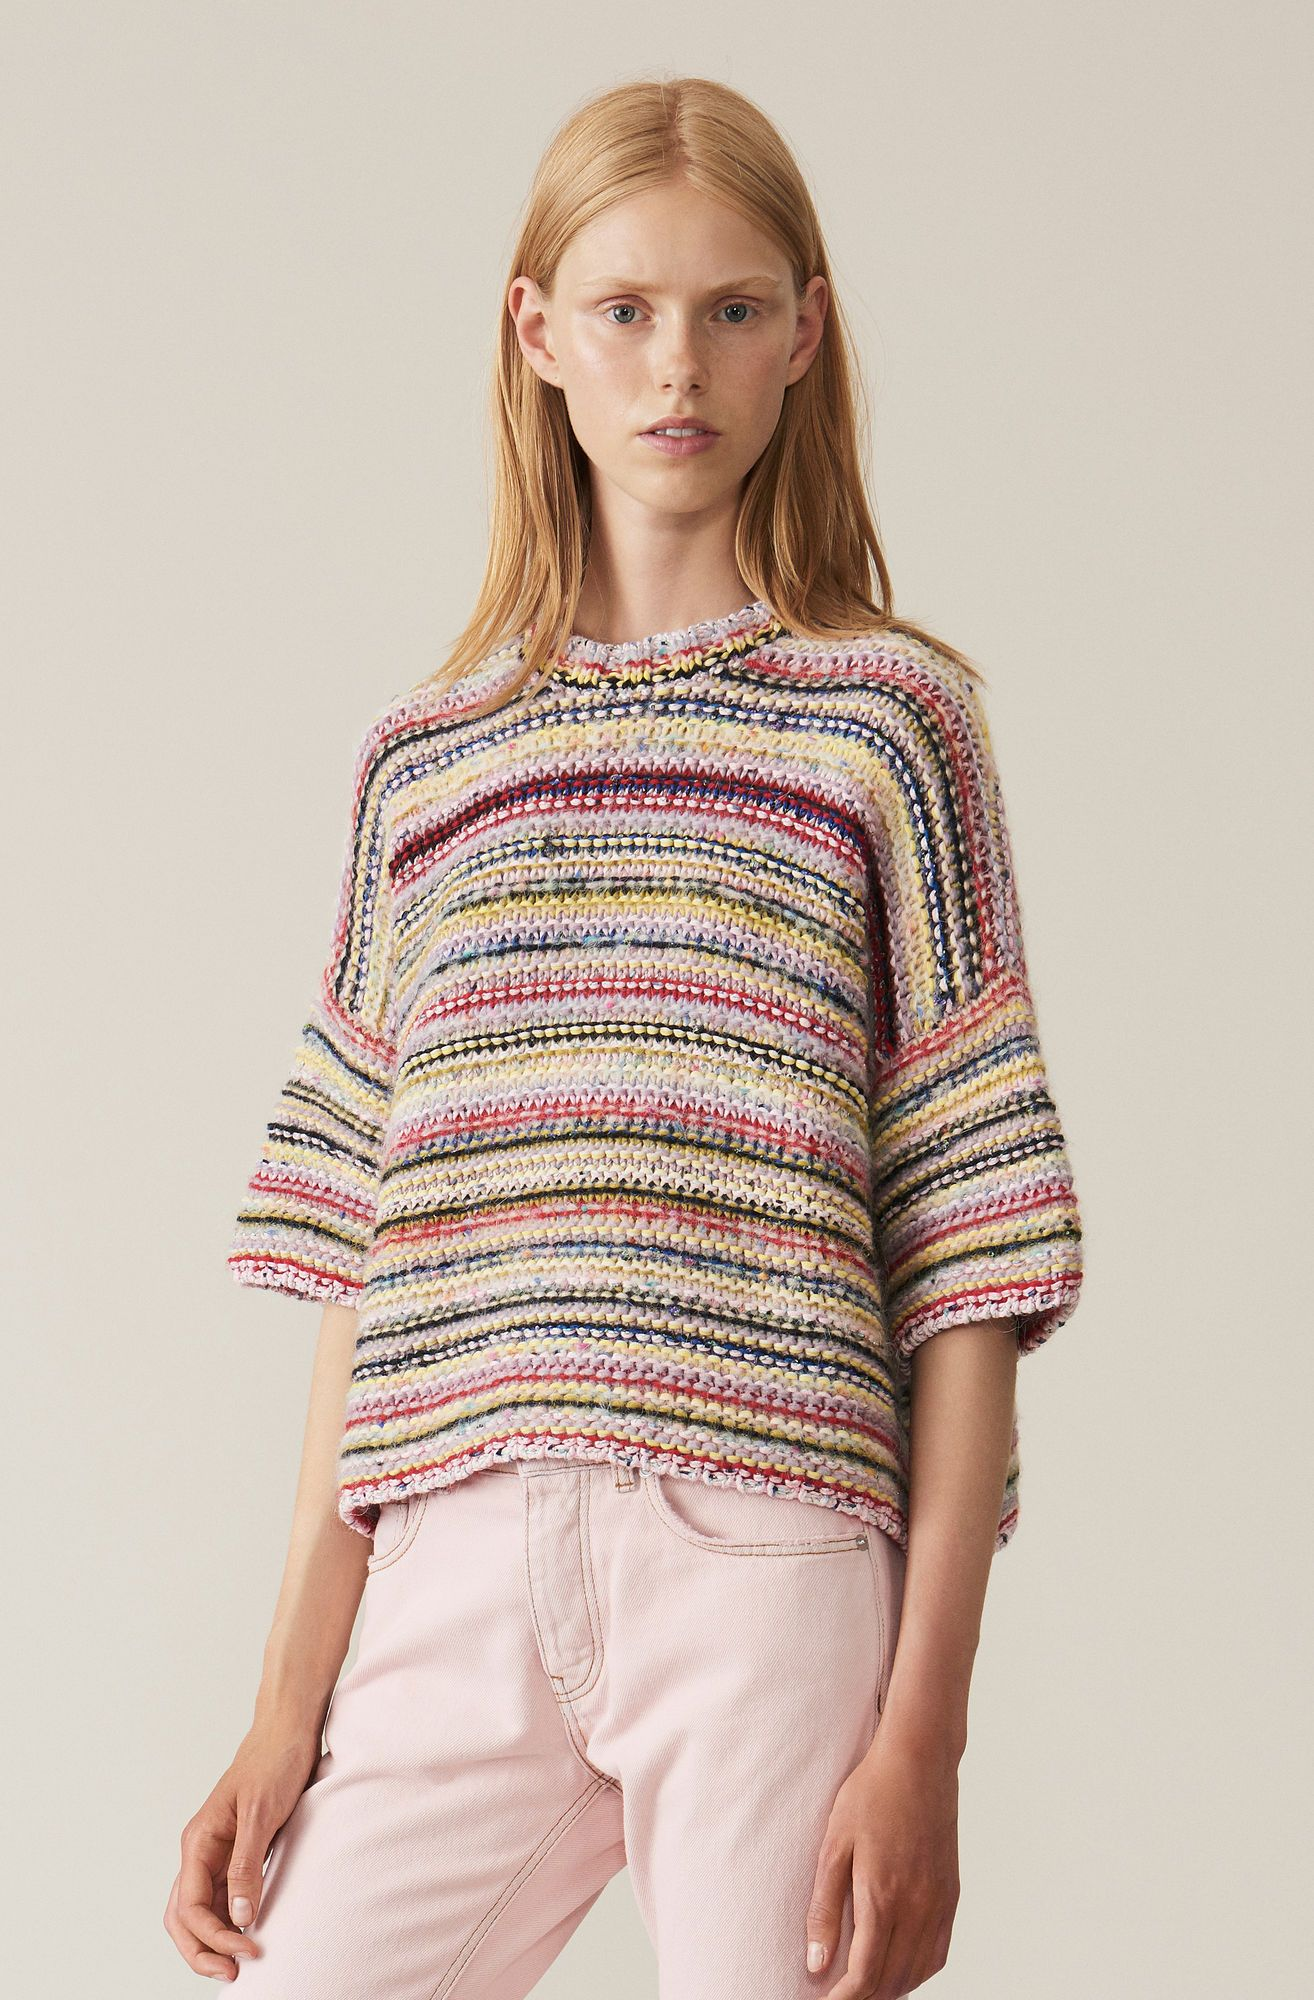 Photo of GANNI Mixed Knit Pullover ( 139.00 EUR ) | Kaufen Sie ihre neue Mixed Knit Pullover bei GANNI.COM